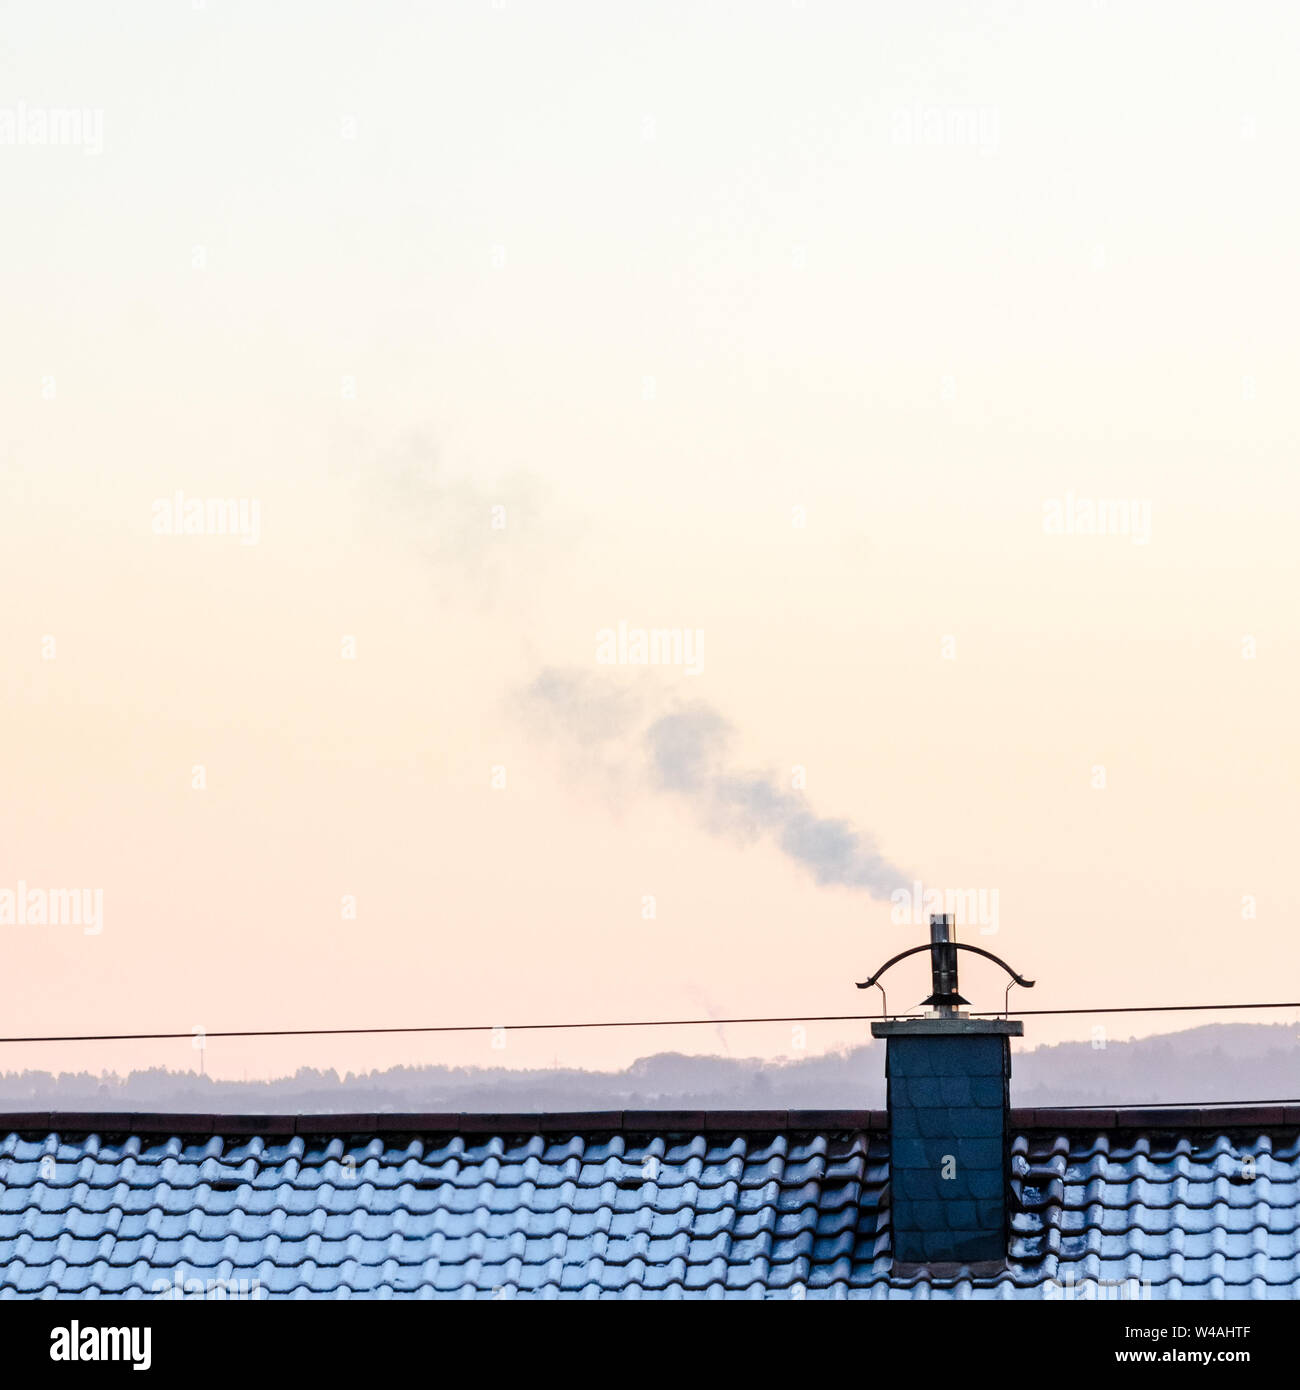 Smoking chimney on a roof during winter in Bavaria, Germany Stock Photo